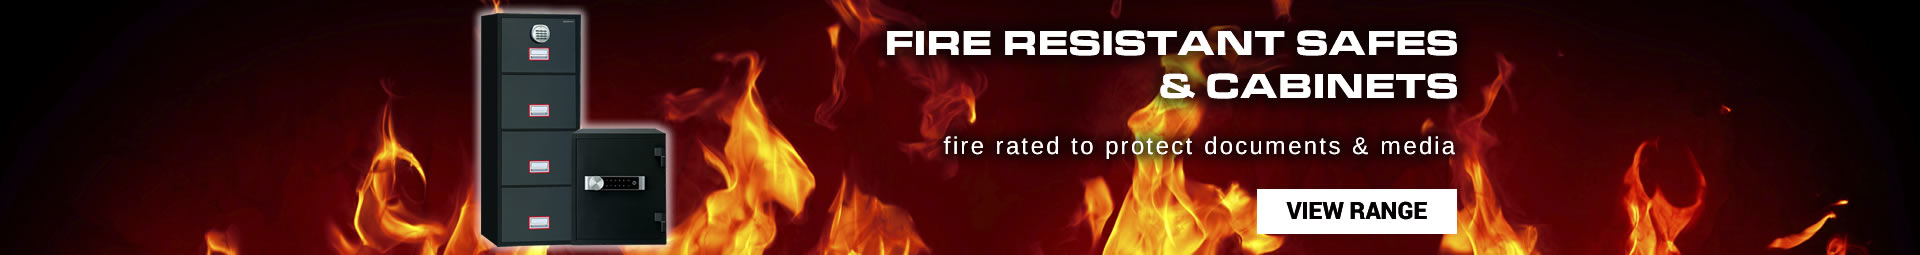 Fire Resistant Safes & Cabinets